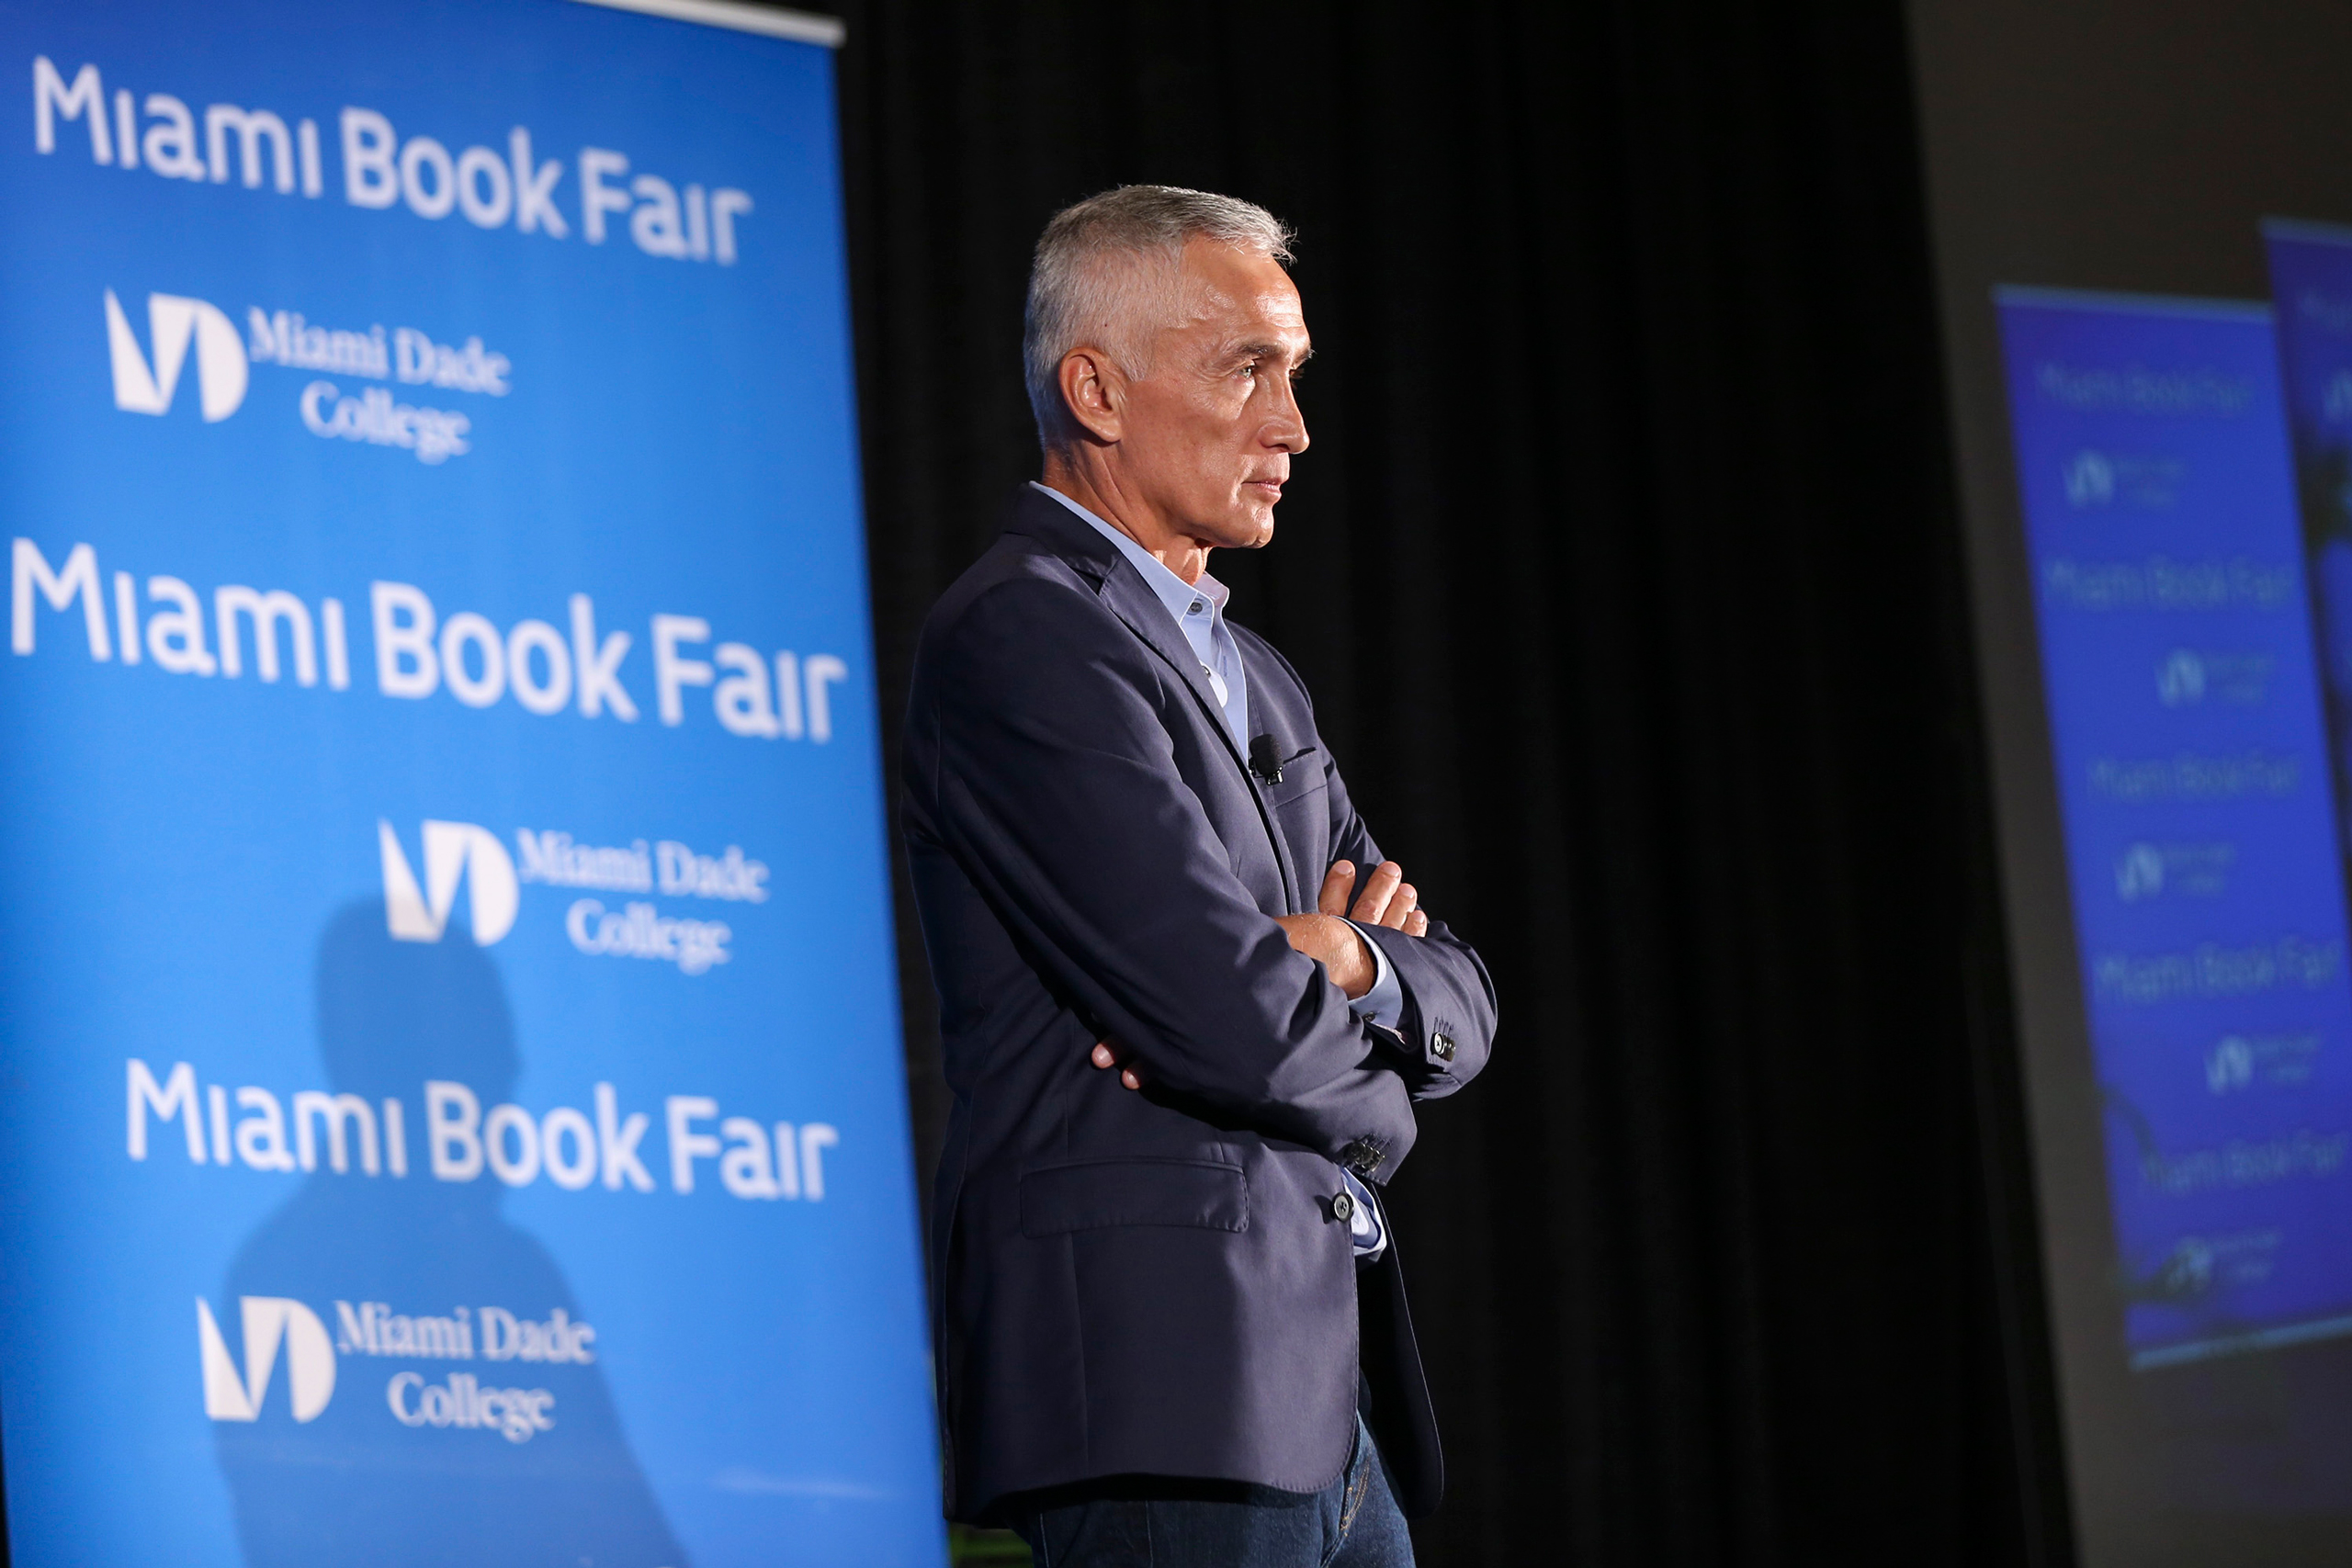 Jorge Ramos speaks during the Miami Book Fair in downtown Miami on Nov. 13, 2016.